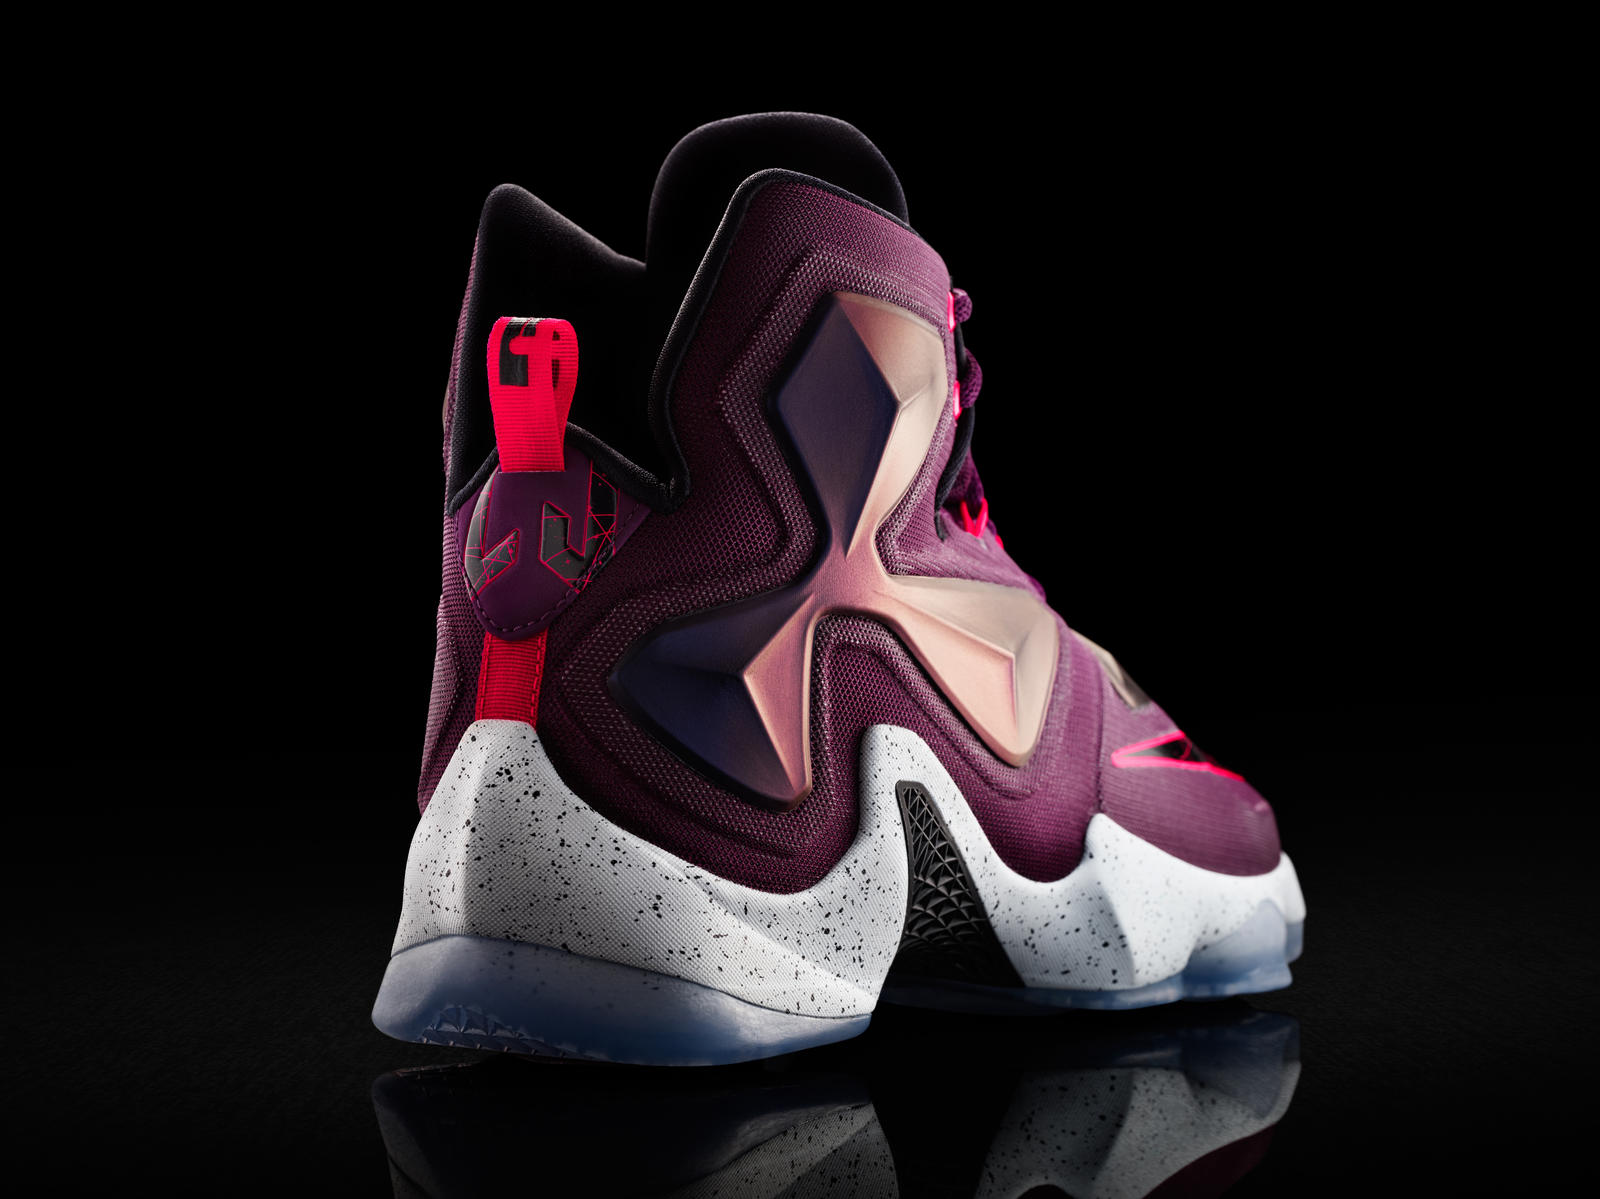 1890bec3fc9c 15-480 Nike LeBron 13 0168-03 native 1600. Hyperposite on the midfoot and collar  adapts to the forceful torque exerted by James at top speed. Wrapping ...